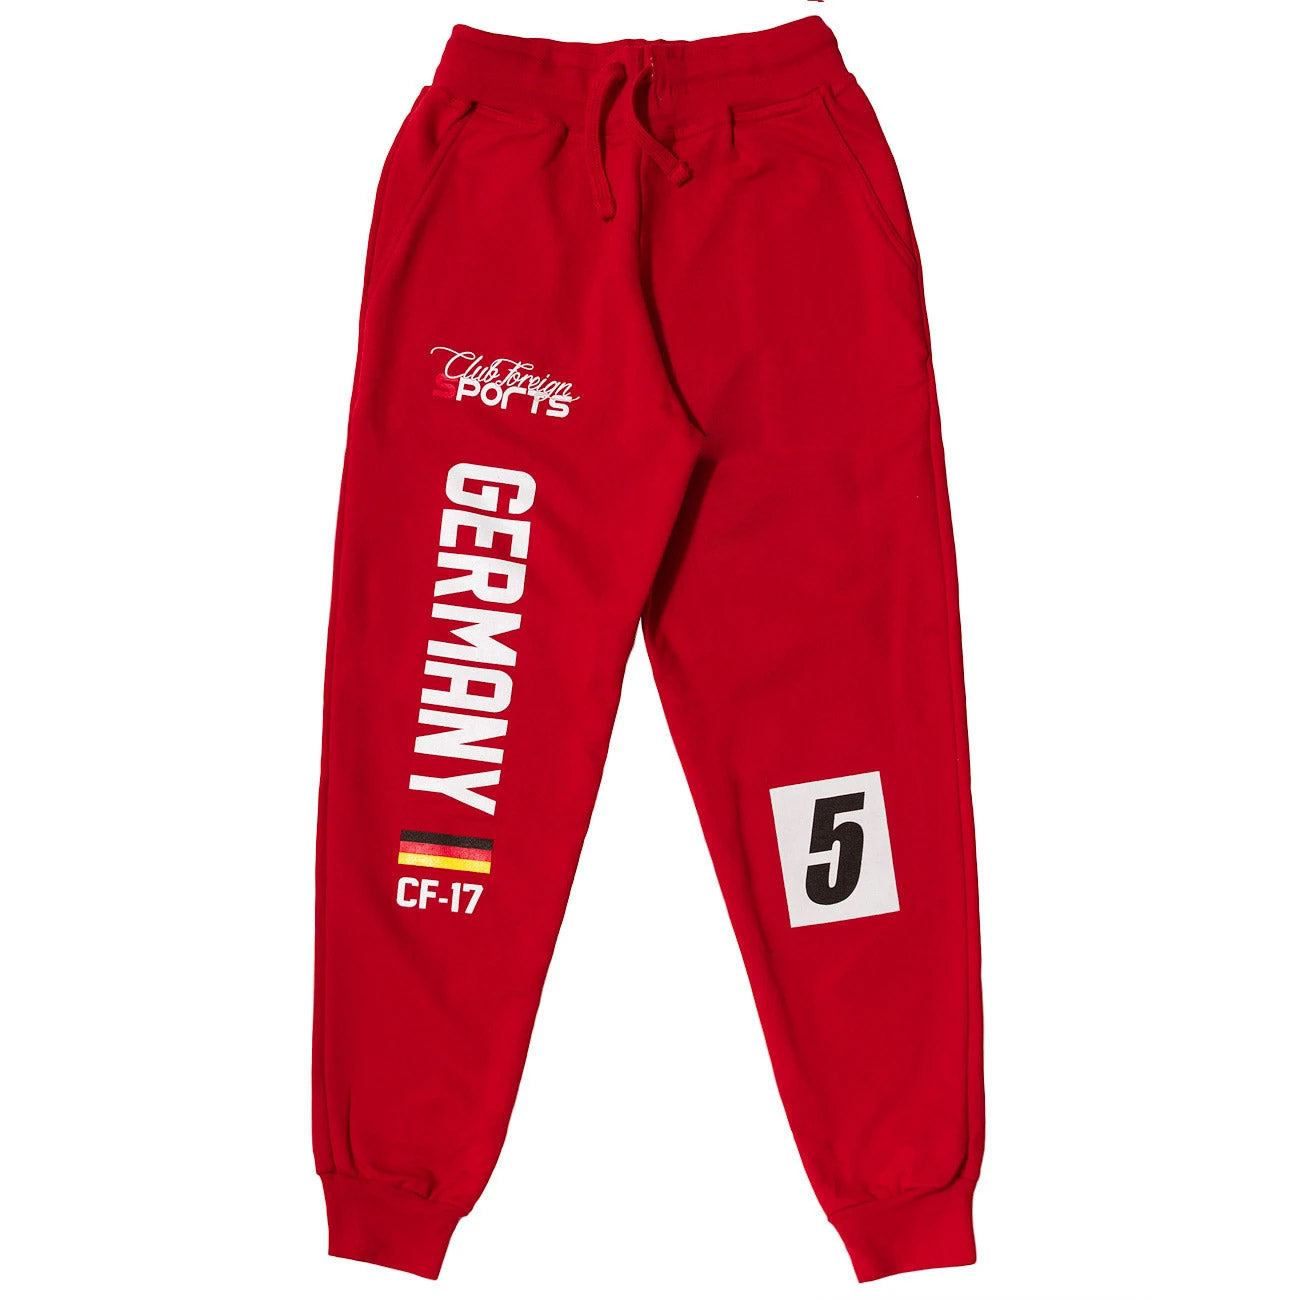 ClubForeign Sports Germany Series Pants Red